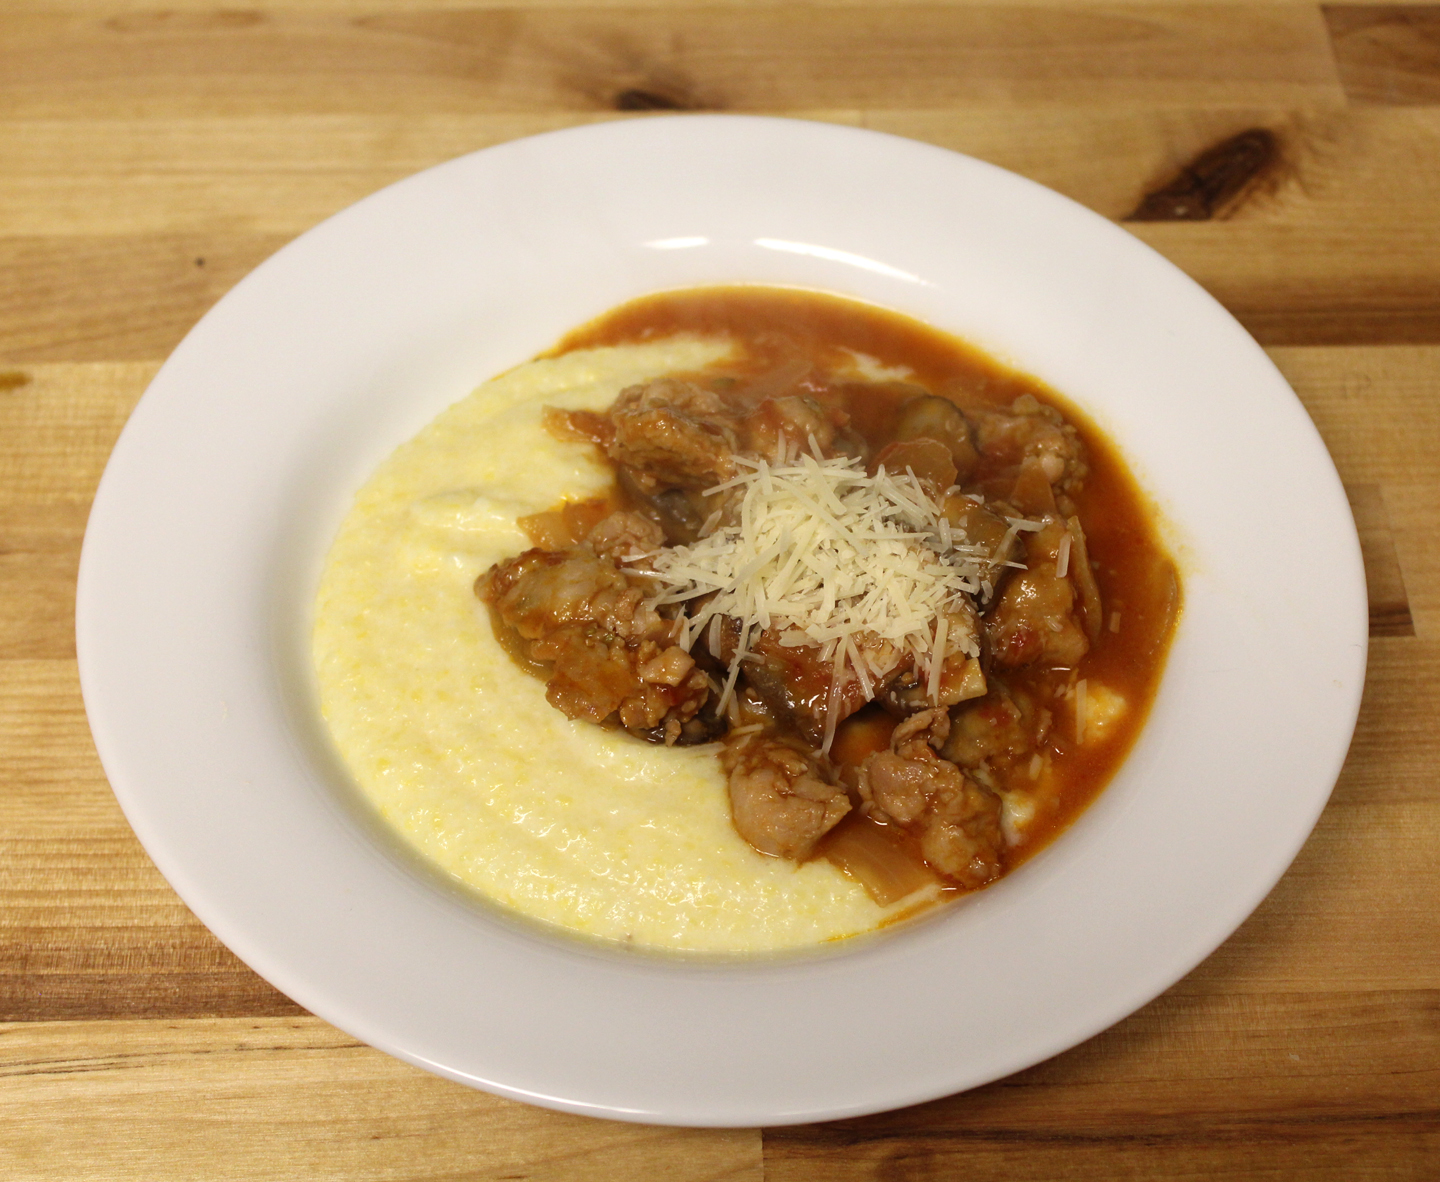 The No Pressure Cooker: Creamy Polenta with Mushroom and Sausage Ragu